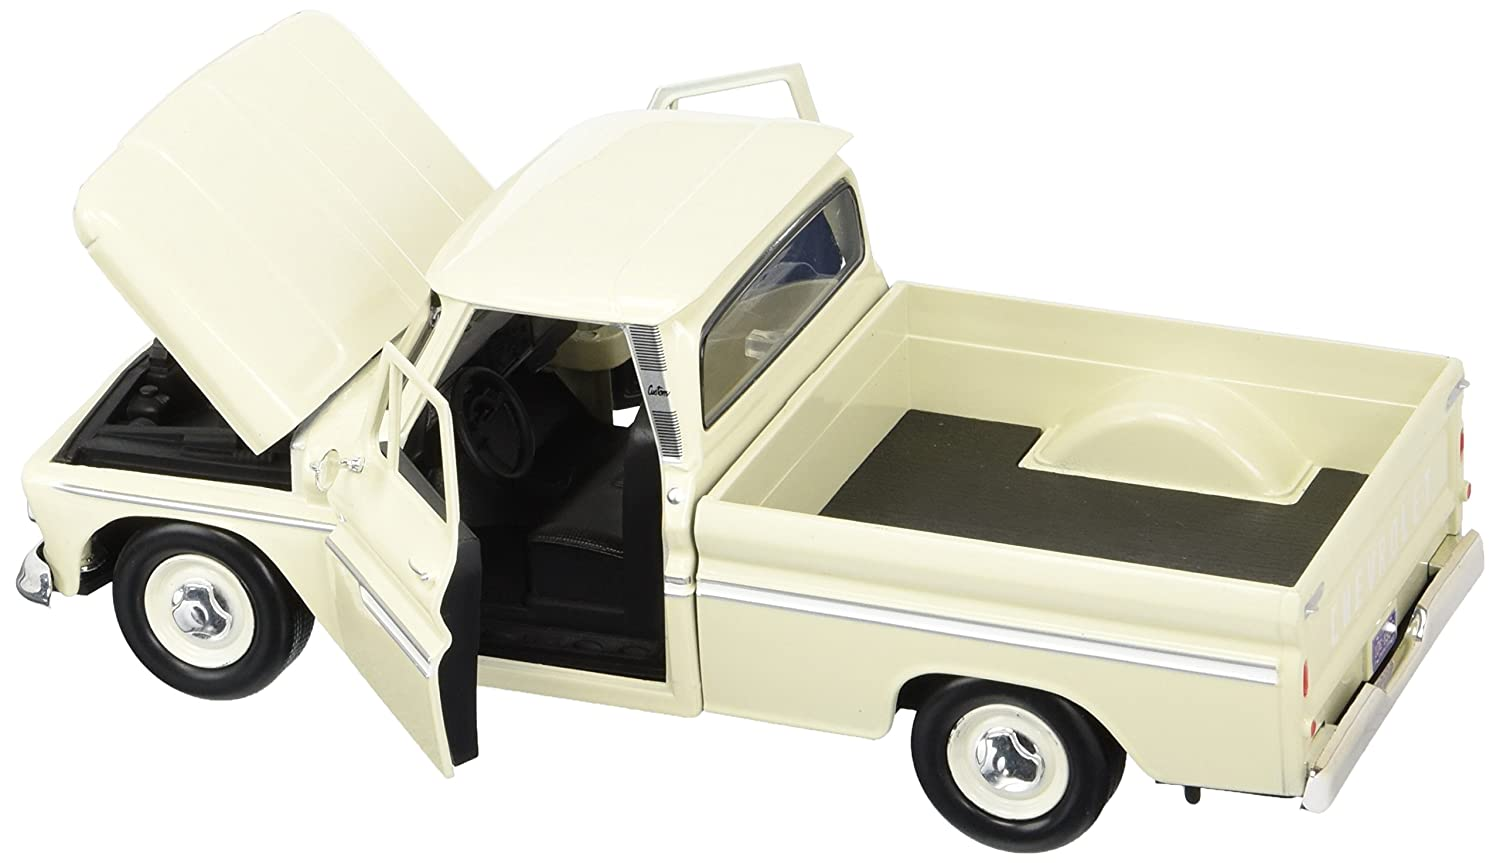 124 1966 Chevy C10 Fleetside Pickup Toys Games 1957 Bel Air Coloring Pages